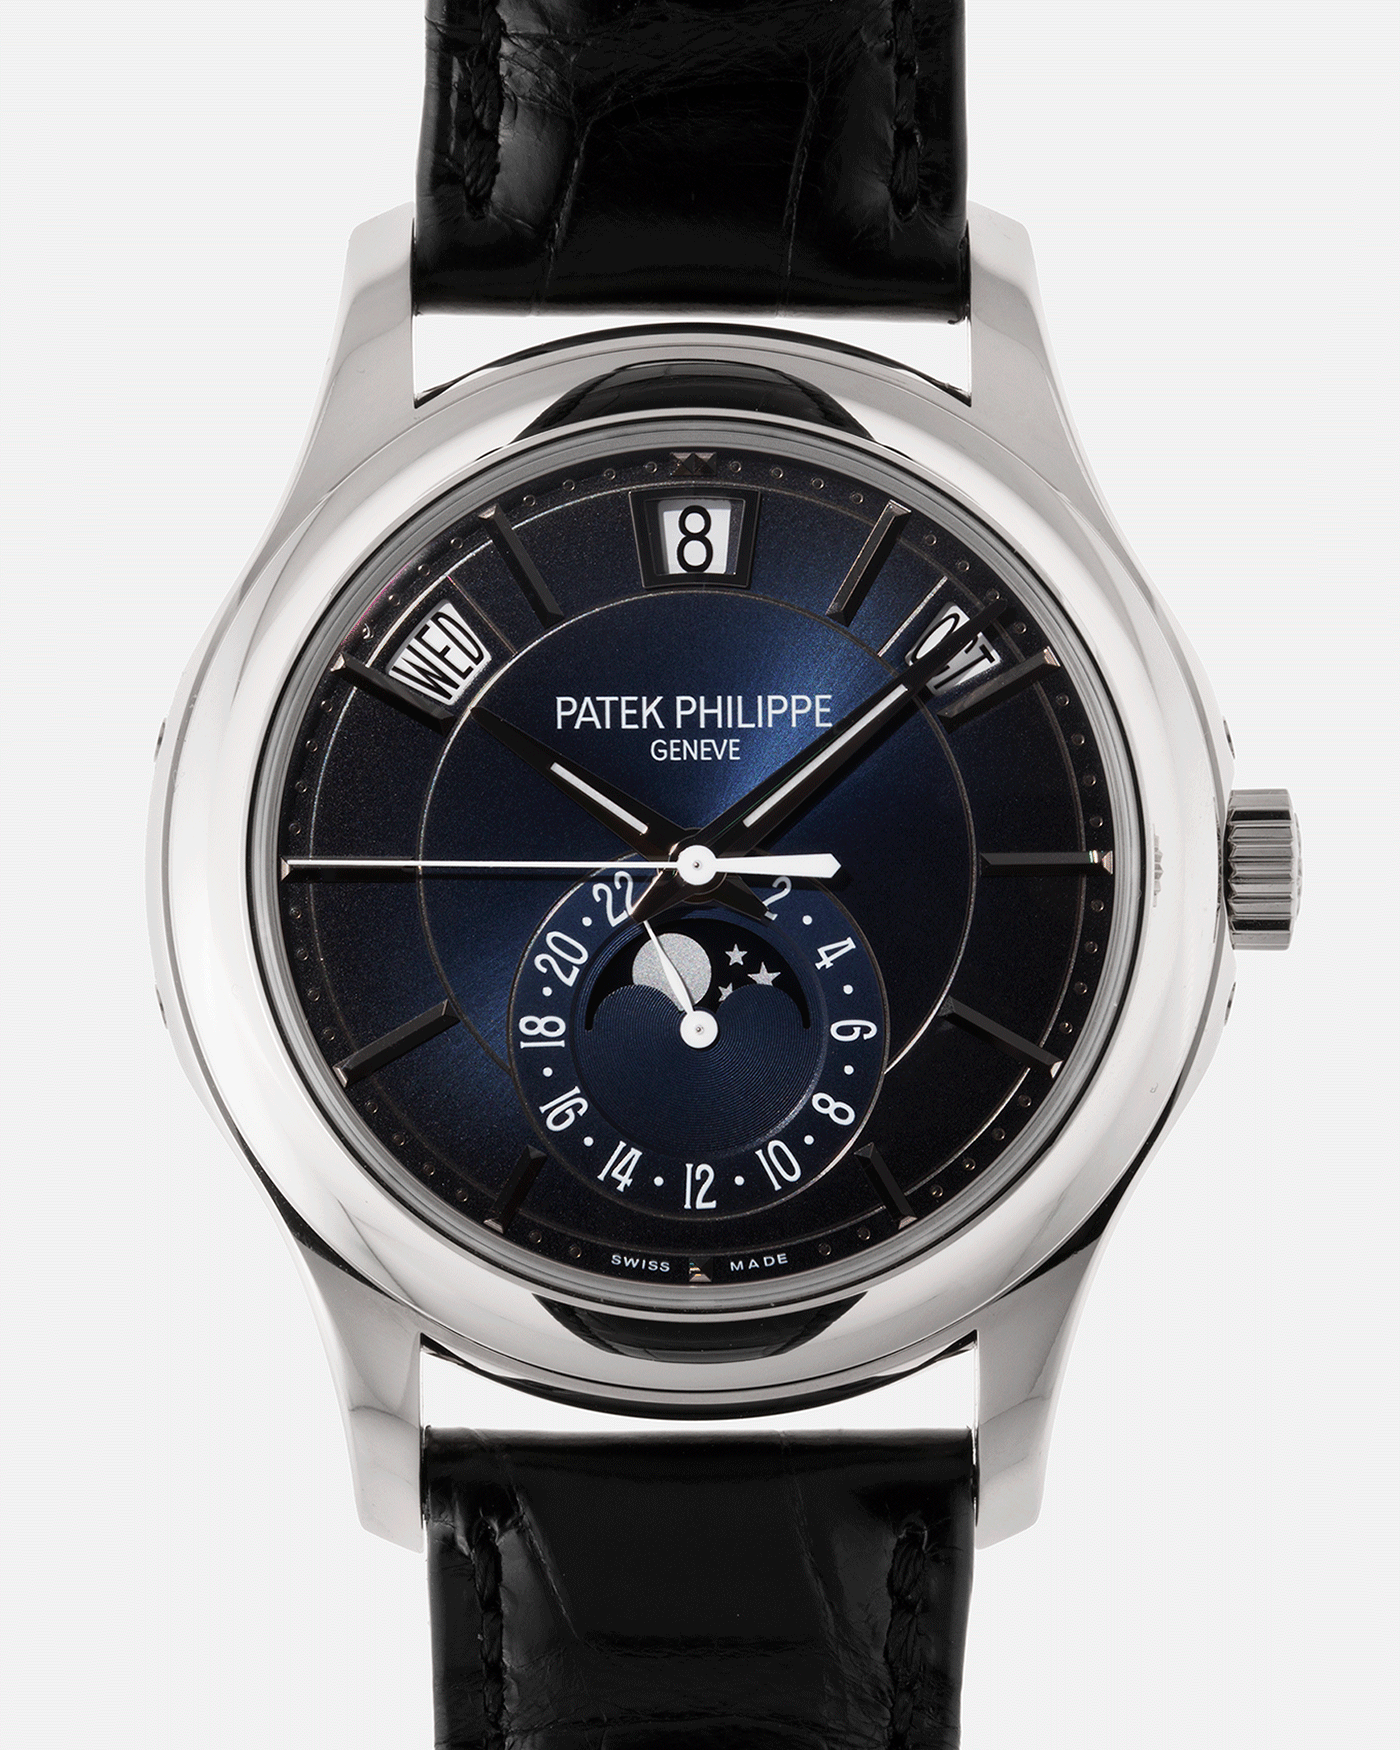 Brand: Patek Philippe Year: 2019 Model: Annual Calendar Reference Number: 5205G Material: 18k White Gold Movement: Cal 324 S QA LU 24H Case Diameter: 40mm Bracelet: Patek Philippe Black Alligator Strap with 18k White Gold Tang Buckle